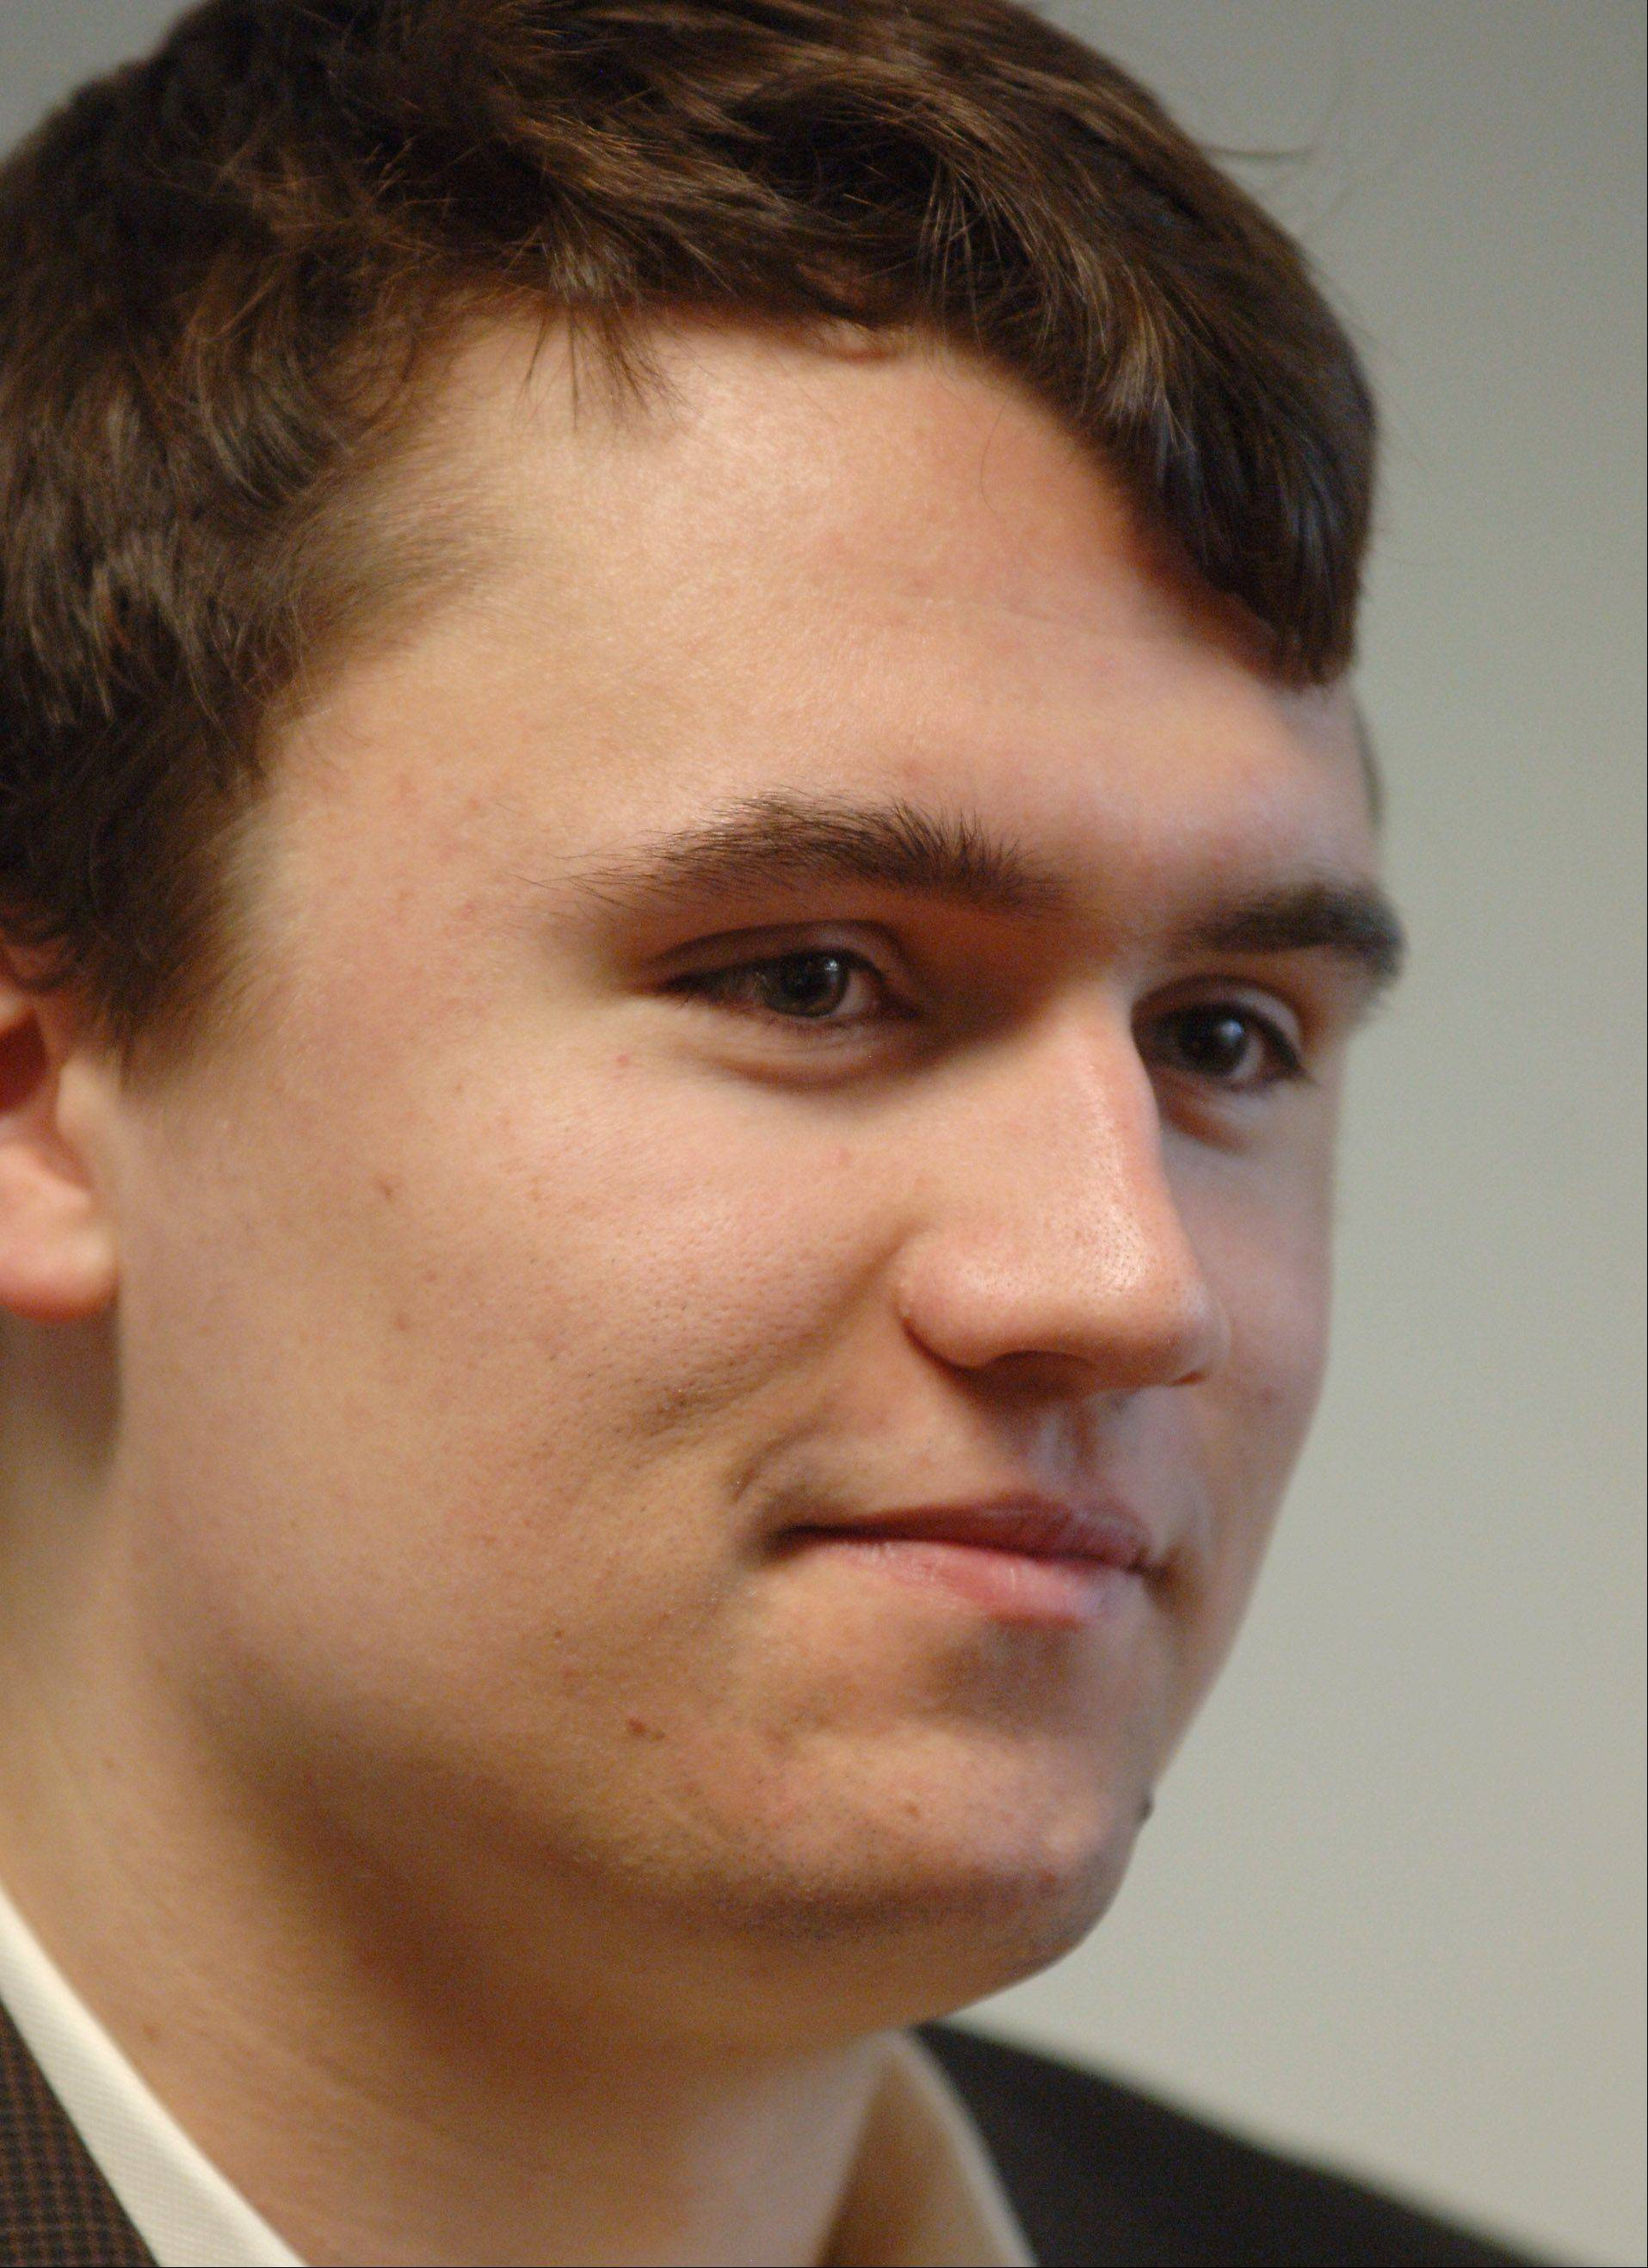 Charlie Kirk, 19, of Wheeling, founded the political Internet startup Turning Point USA and frequently has been in the national eye as a representative of politically active young people.